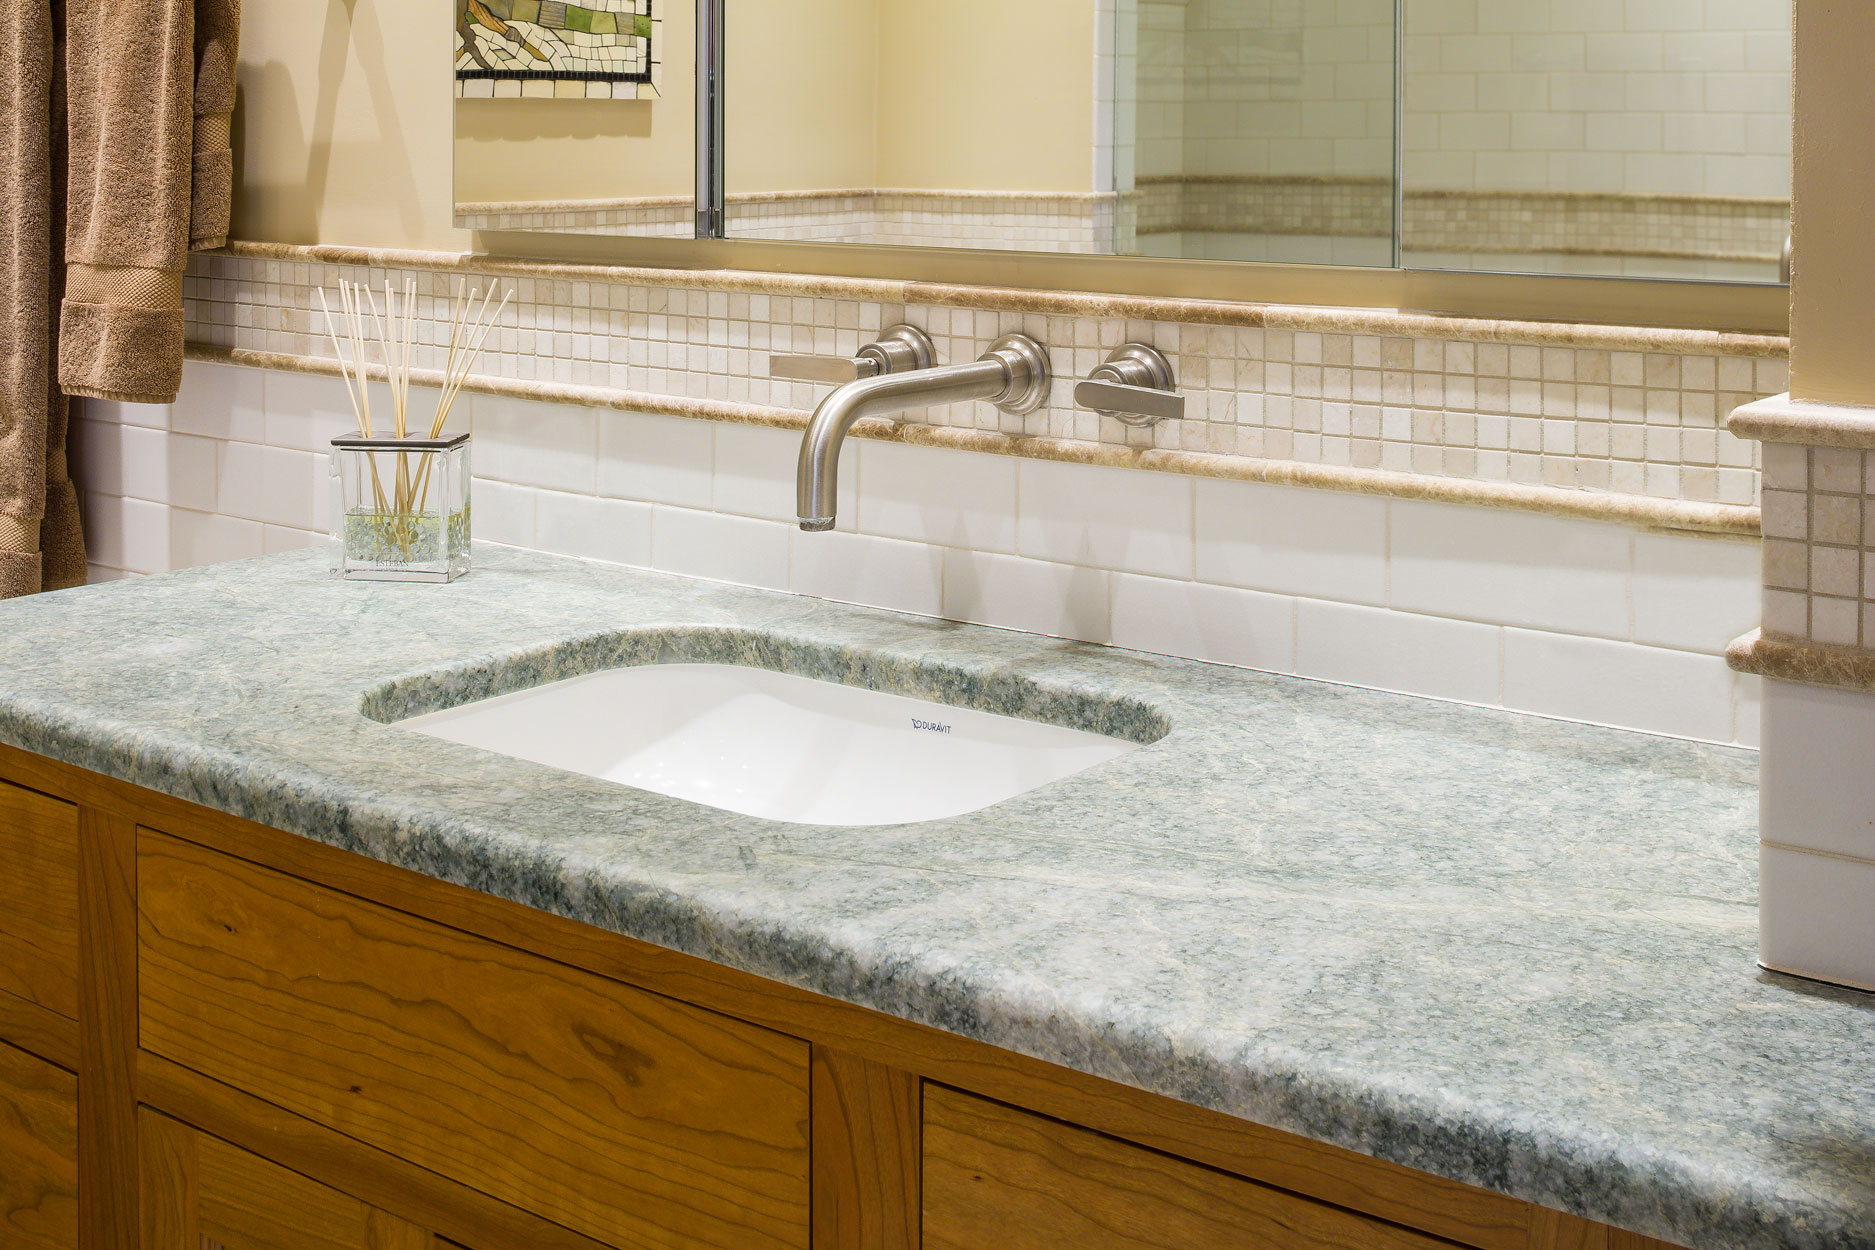 close up of a bathroom sink with a green stone countertop